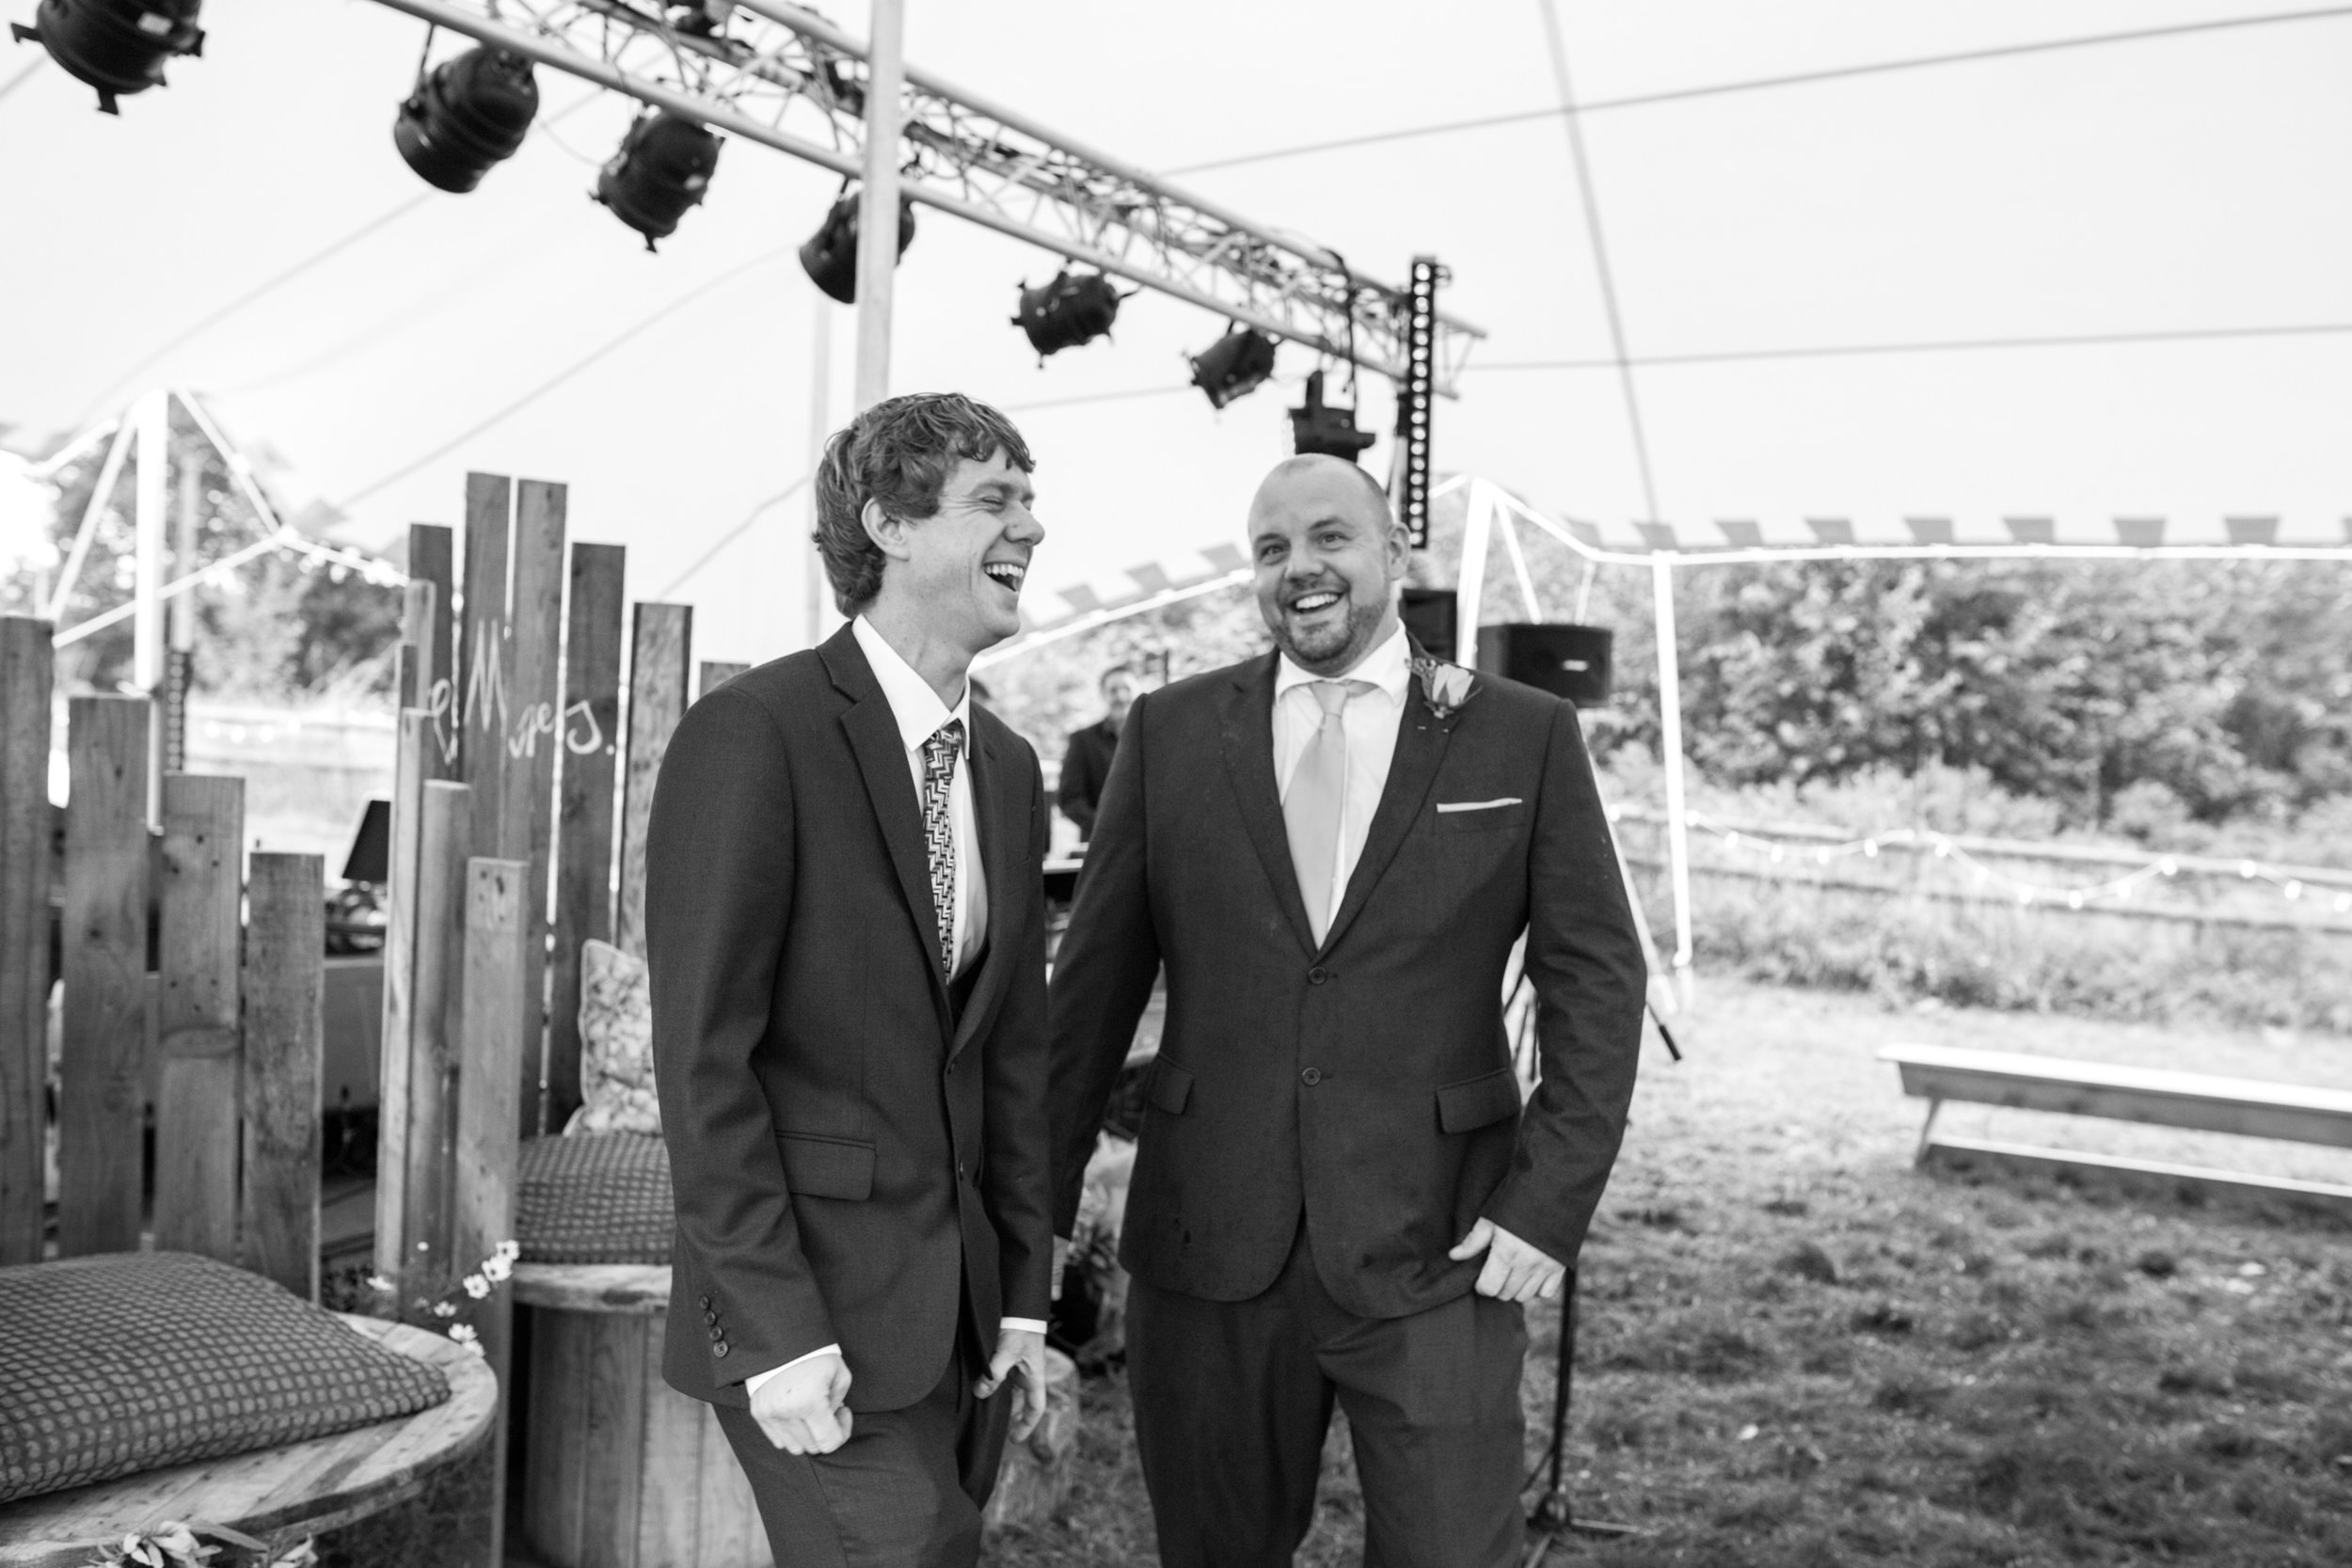 Groom and Best man share a laugh, Shropshire festival wedding photography